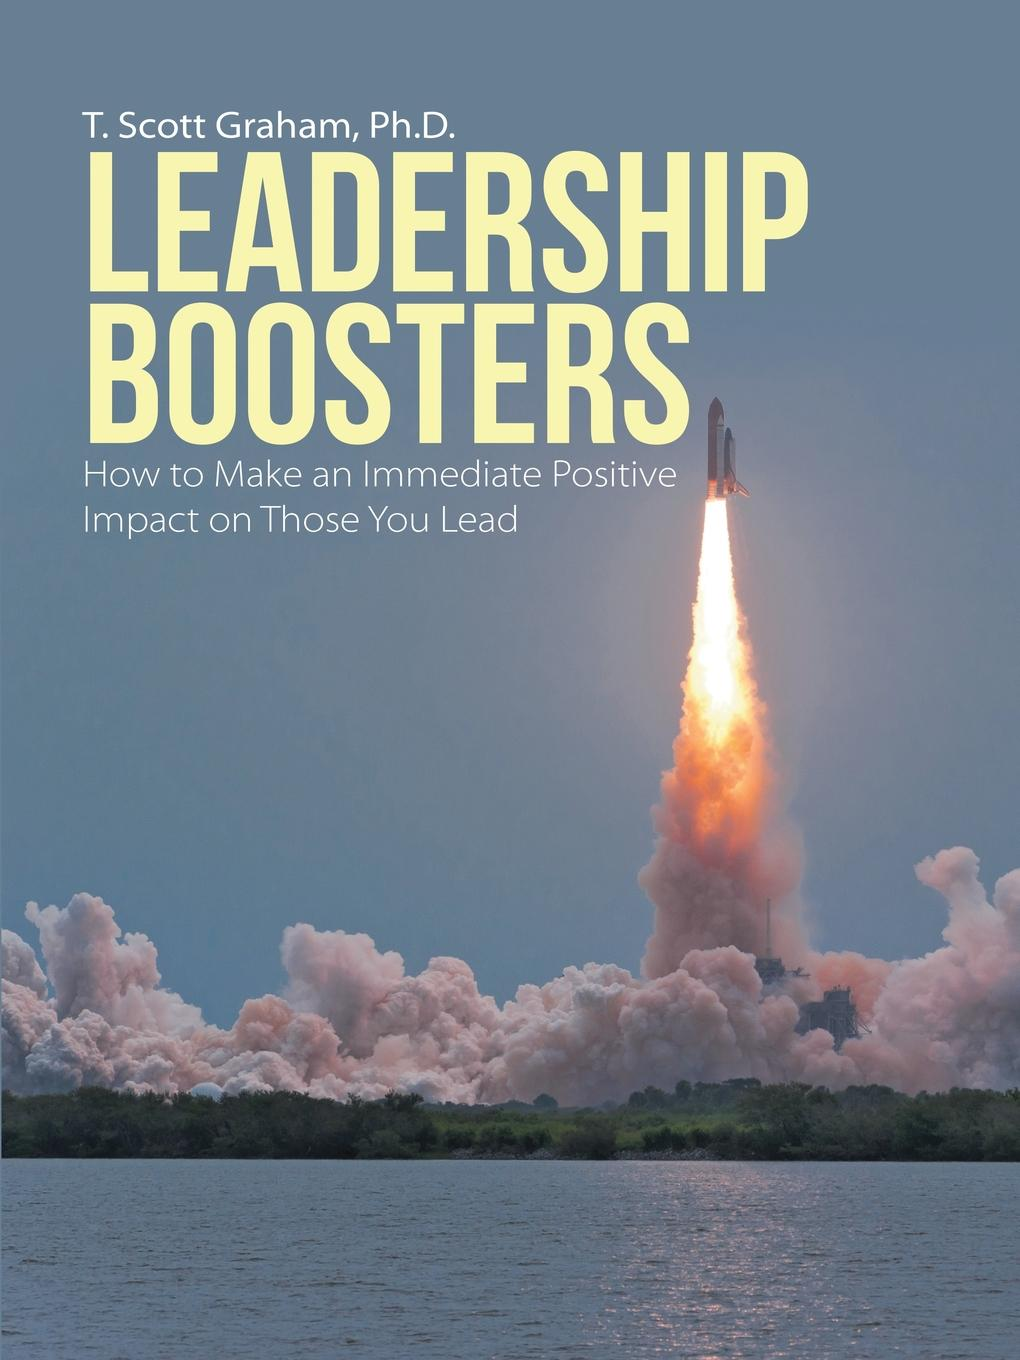 Ph.D. T. Scott Graham Leadership Boosters. How to Make an Immediate Positive Impact on Those You Lead richard nongard transformational leadership how to lead from your strengths and maximize your impact